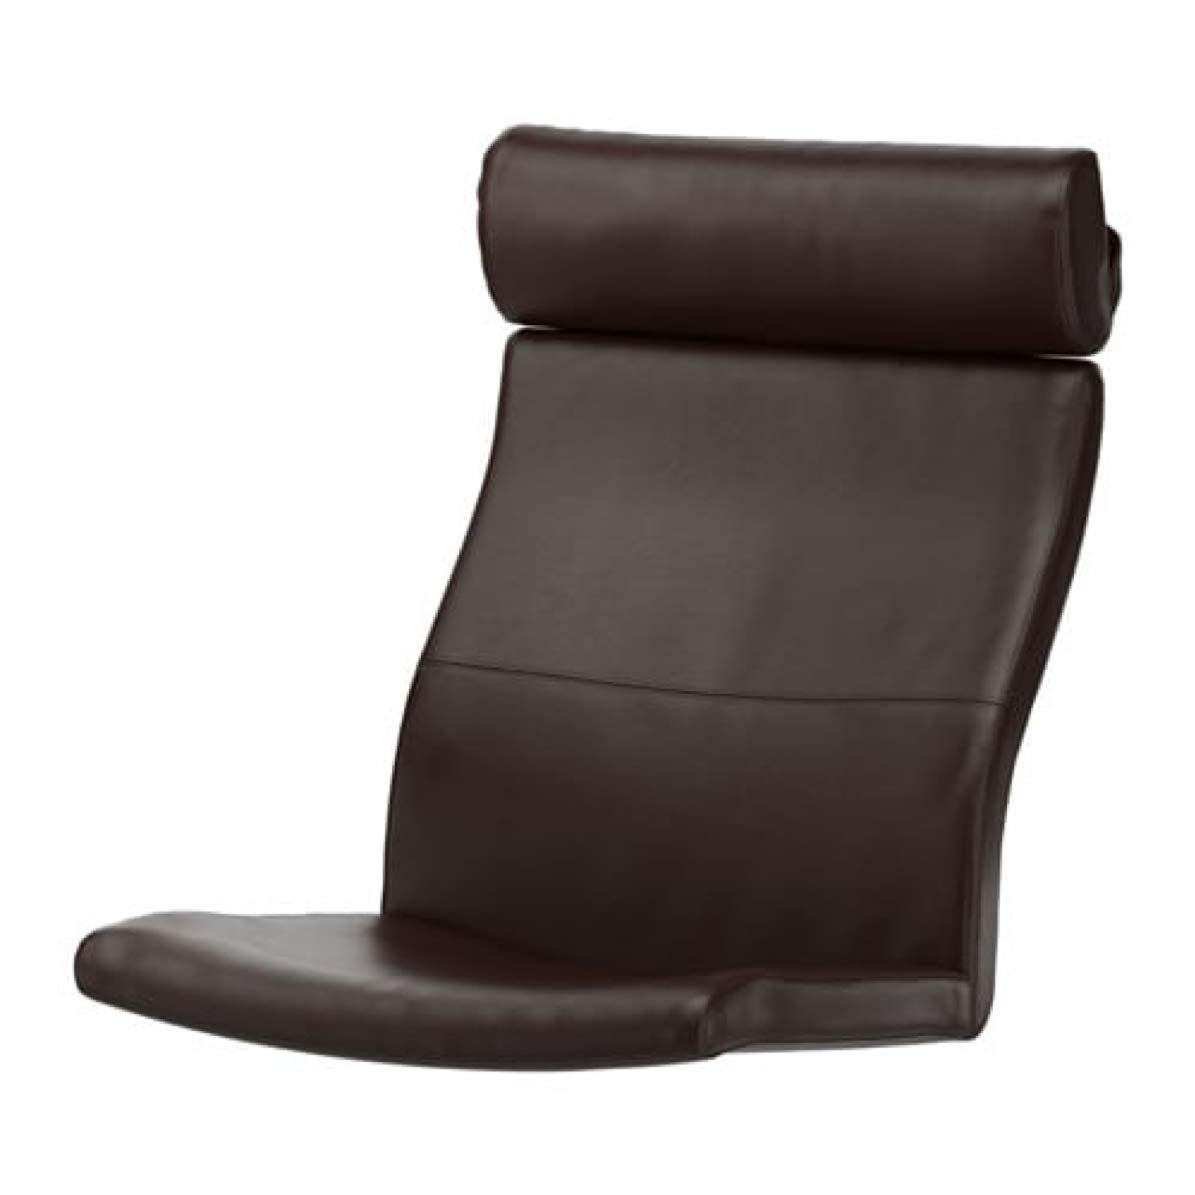 Amazon.com: IKEA Poang Chair Cushion Robust Glose Black ...